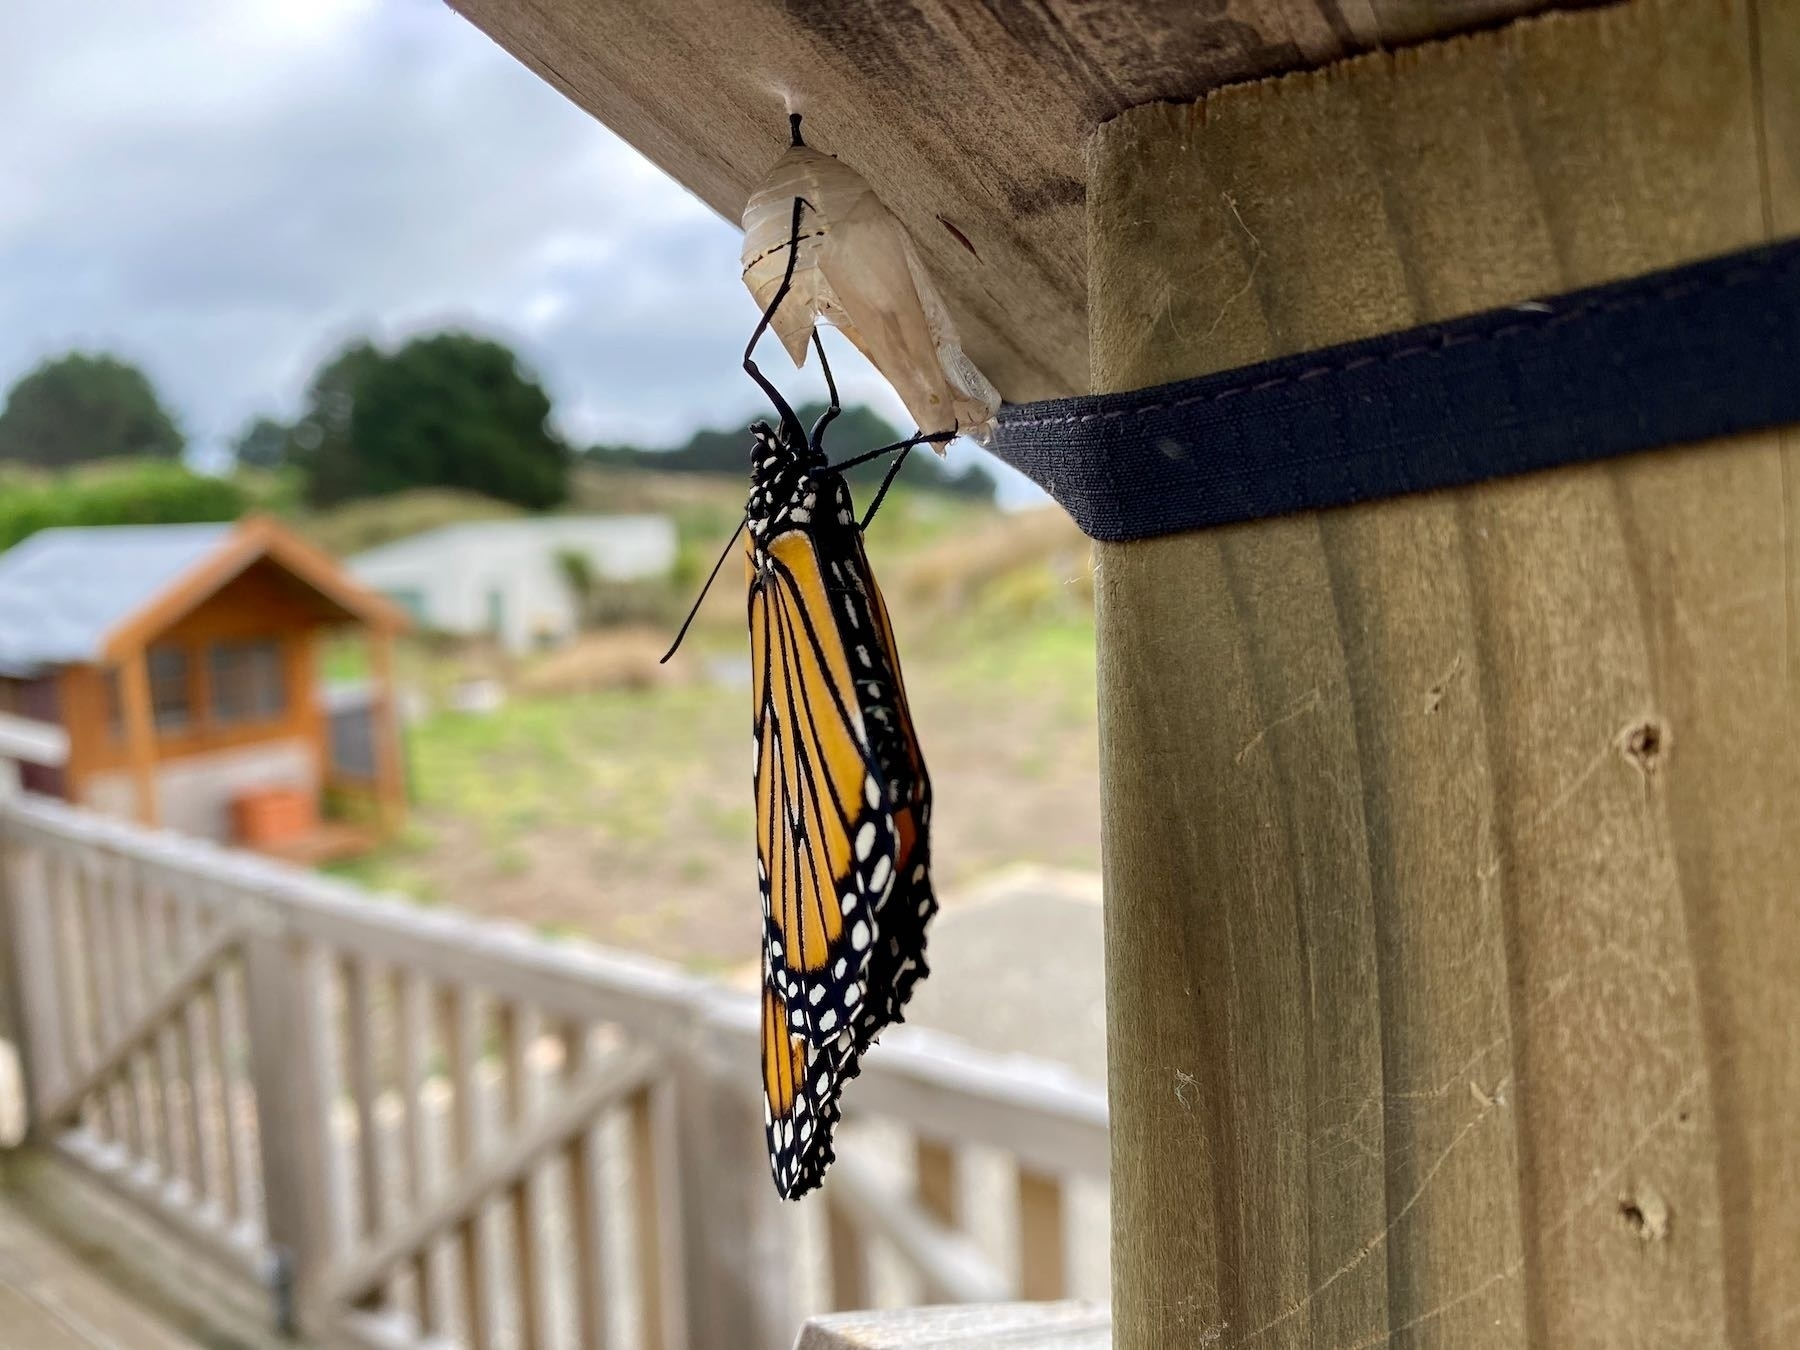 New Monarch Butterfly, alternate view.